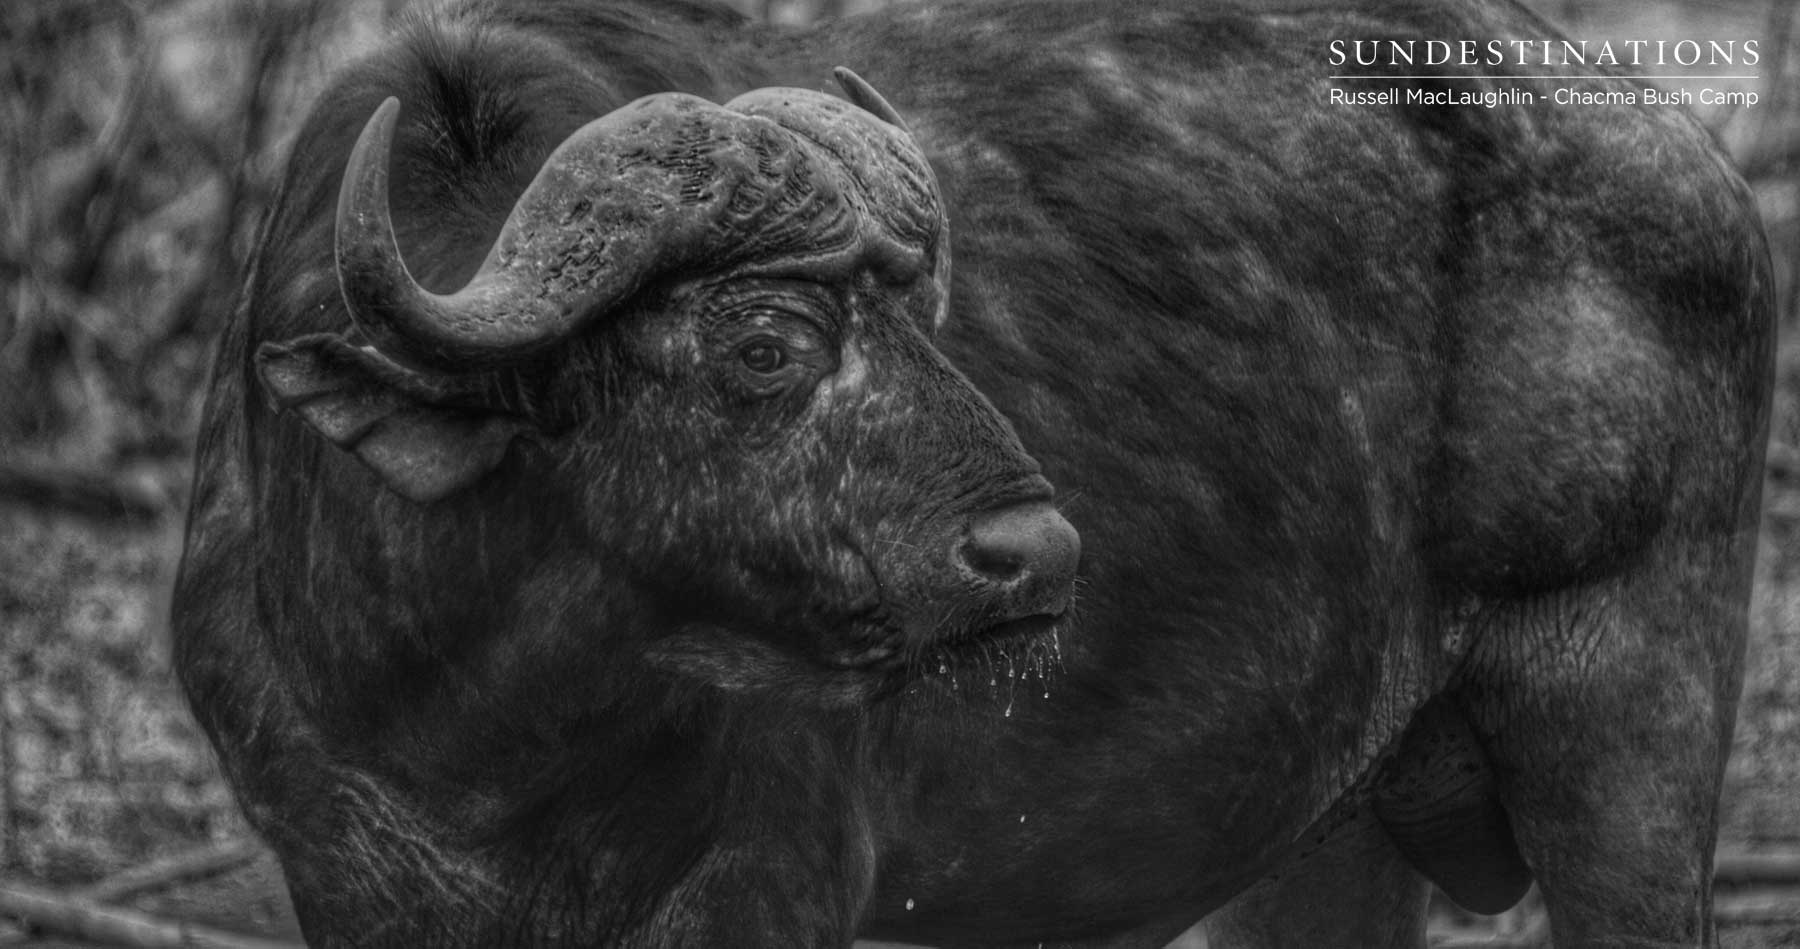 Buffalo at Chacma Bush Camp